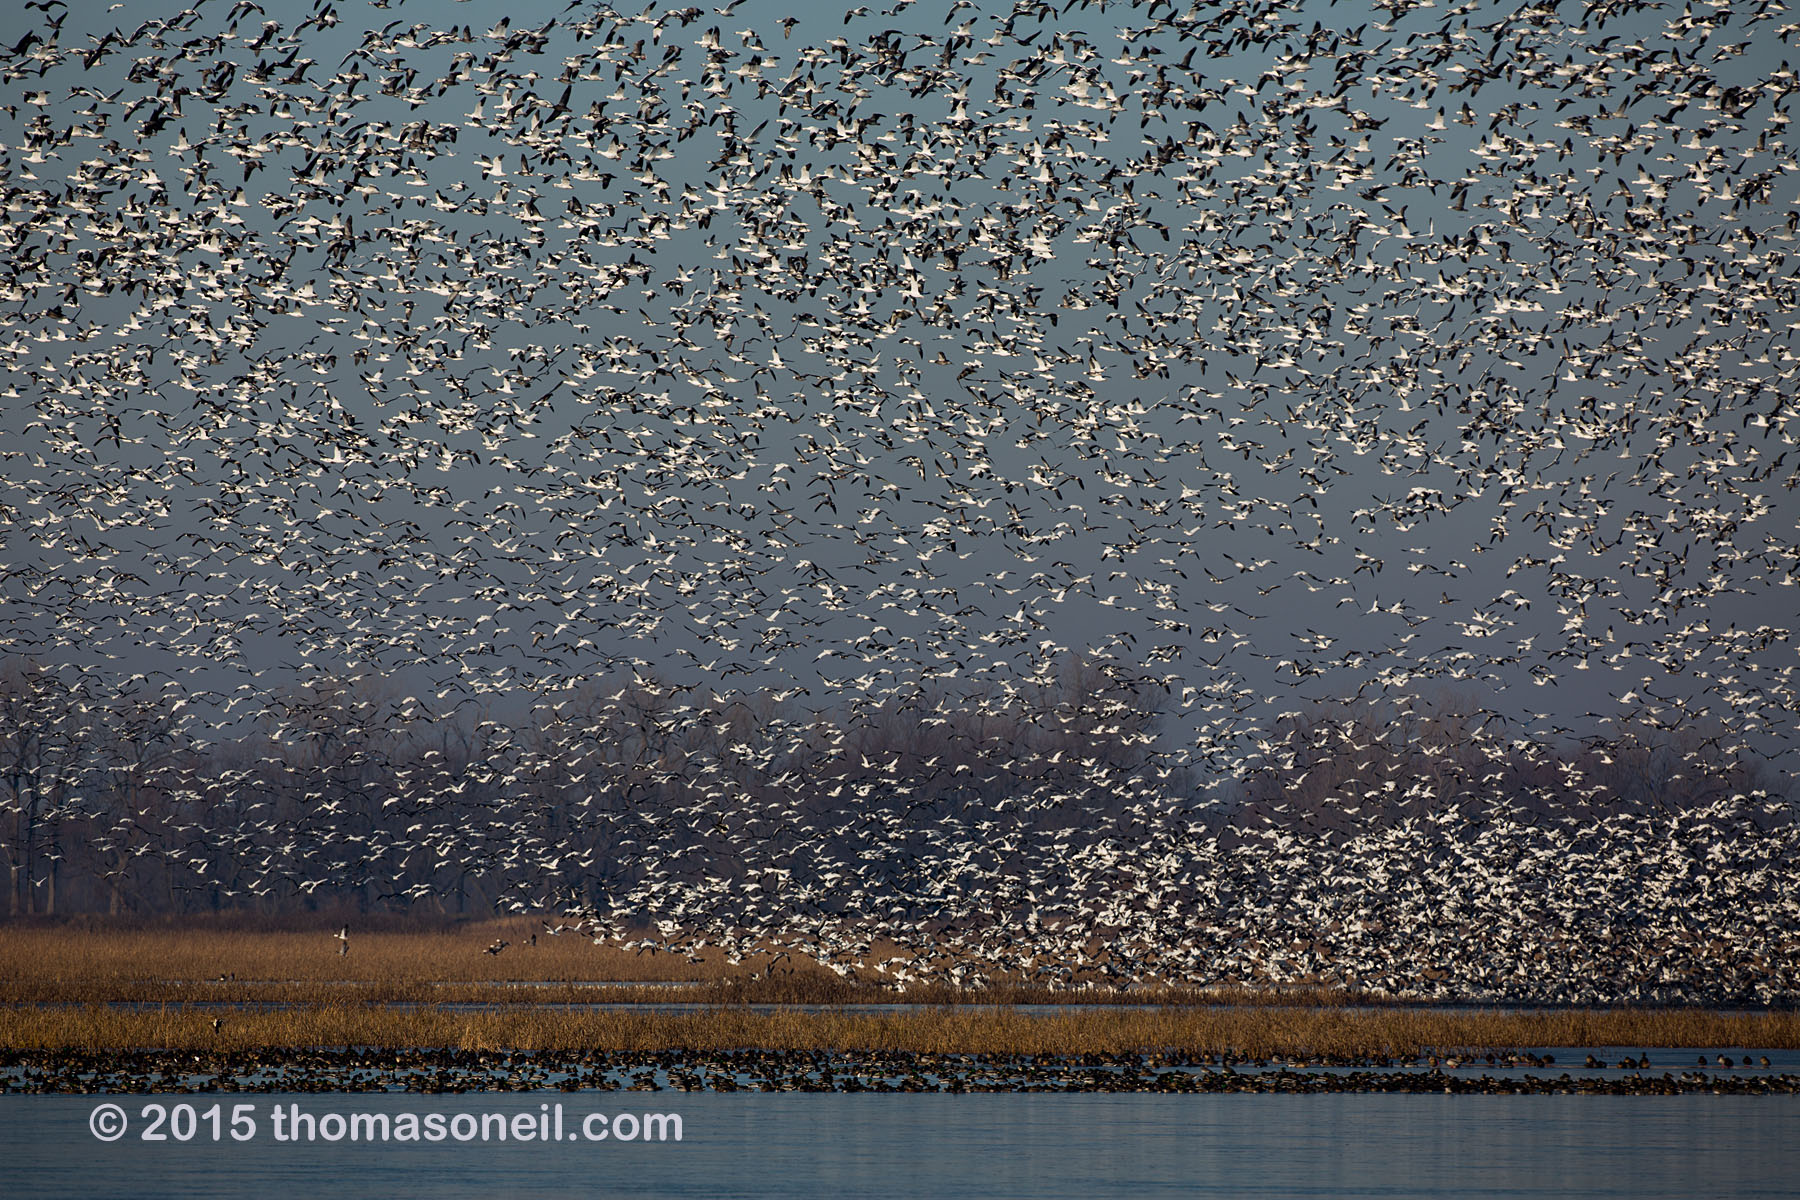 Snow geese, Squaw Creek NWR, Missouri, December 2015.  Click for next photo.